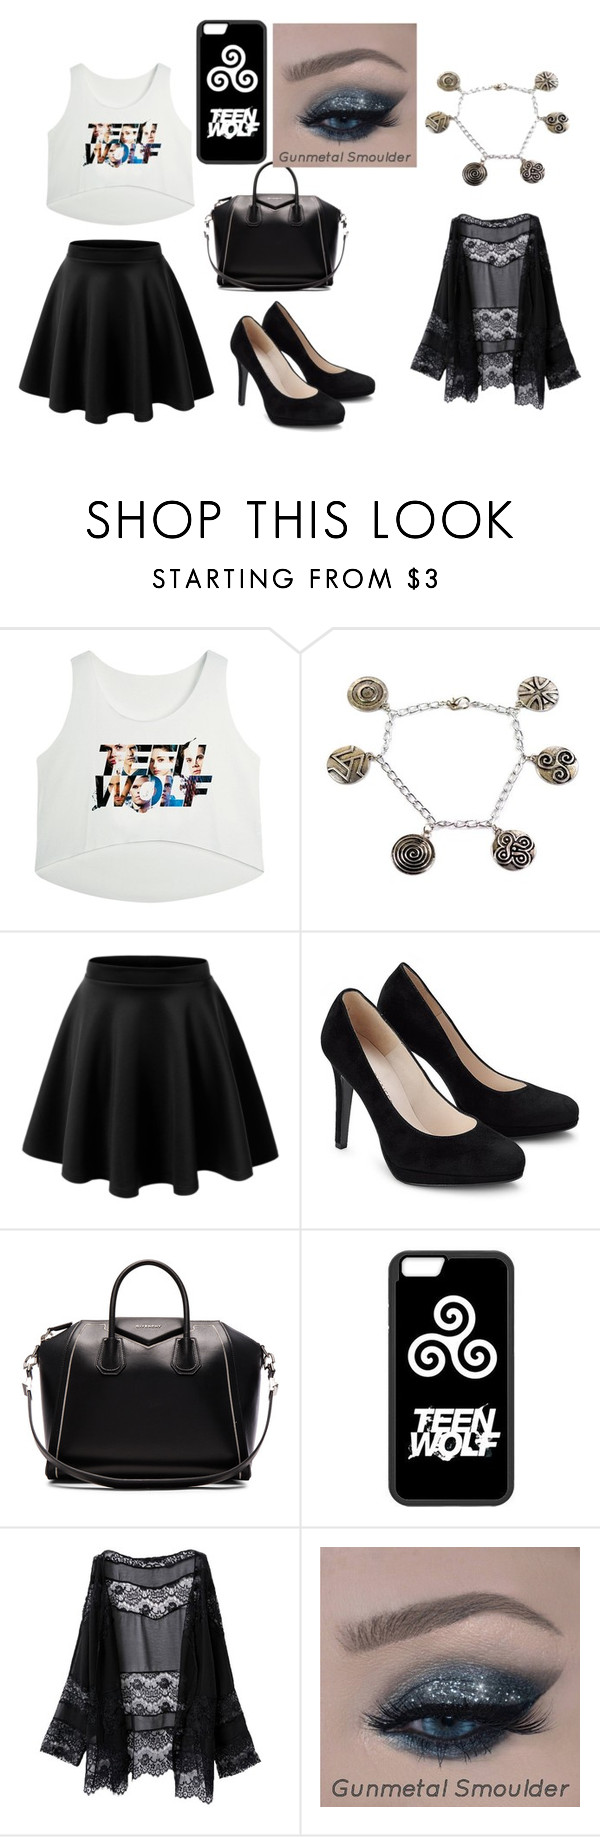 """""""teen wolf outfit"""" by bellapaige-clxxi on Polyvore featuring Givenchy"""